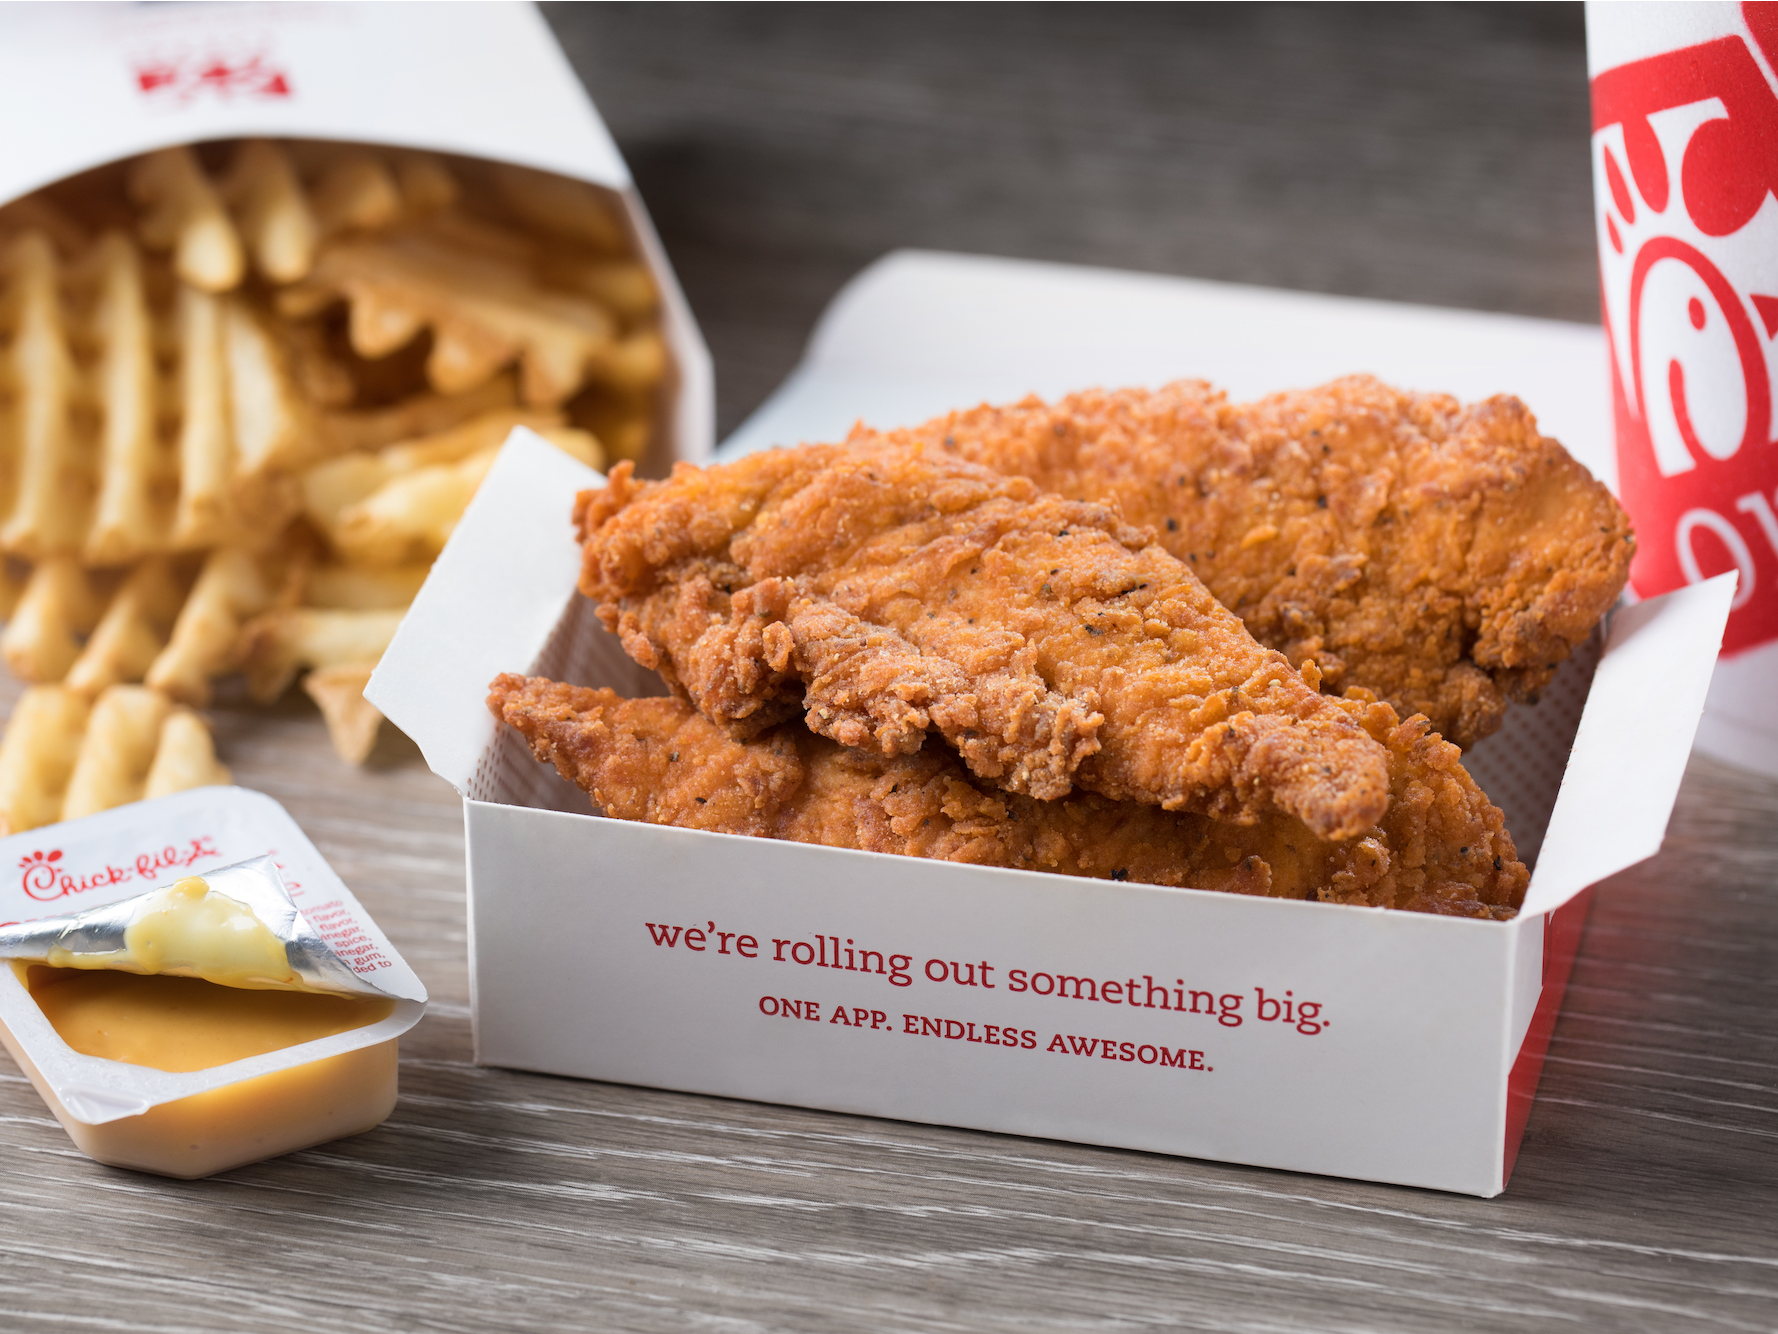 image about Chick Fil a Printable Menu identify Chick-fil-A is tests spicy bird strips as the chain